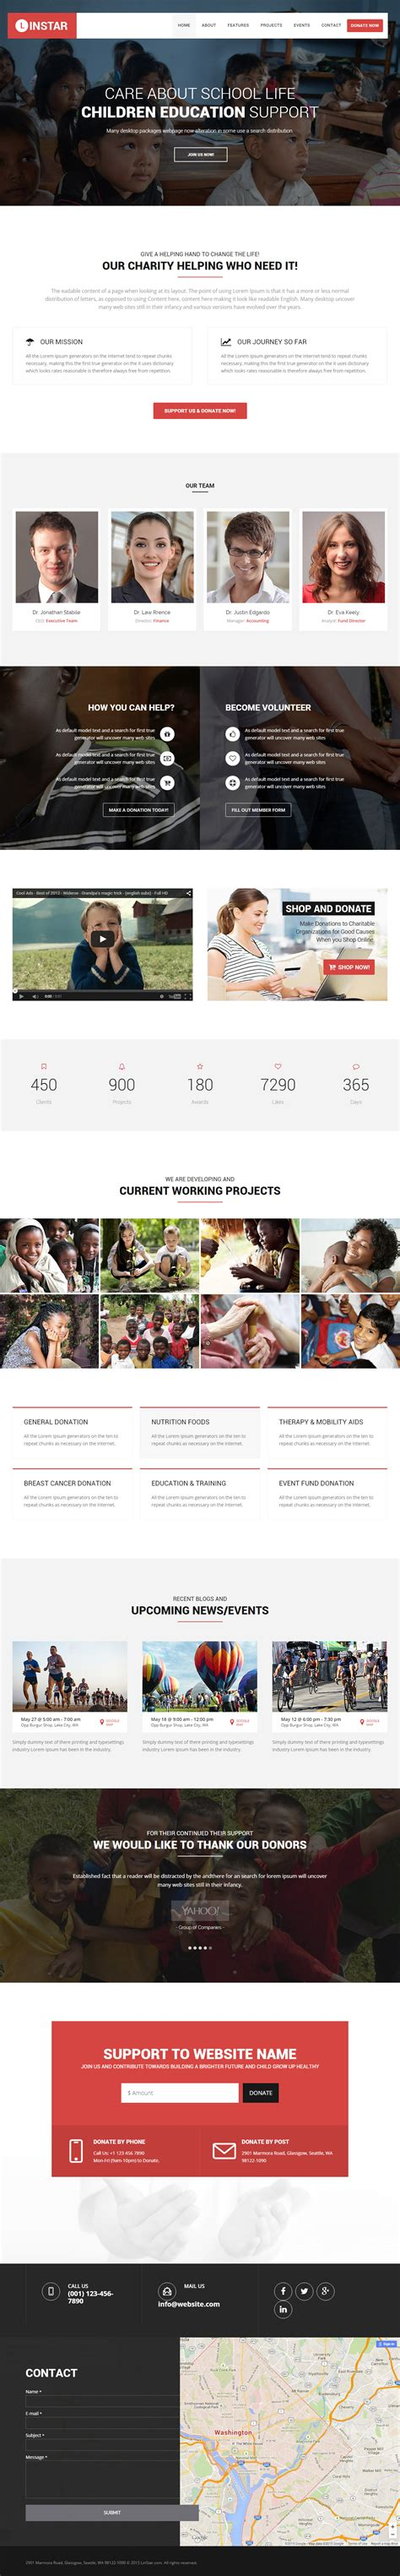 15 Best Html5 Charity Website Templates 2017 Responsive Miracle Best Charity Website Templates